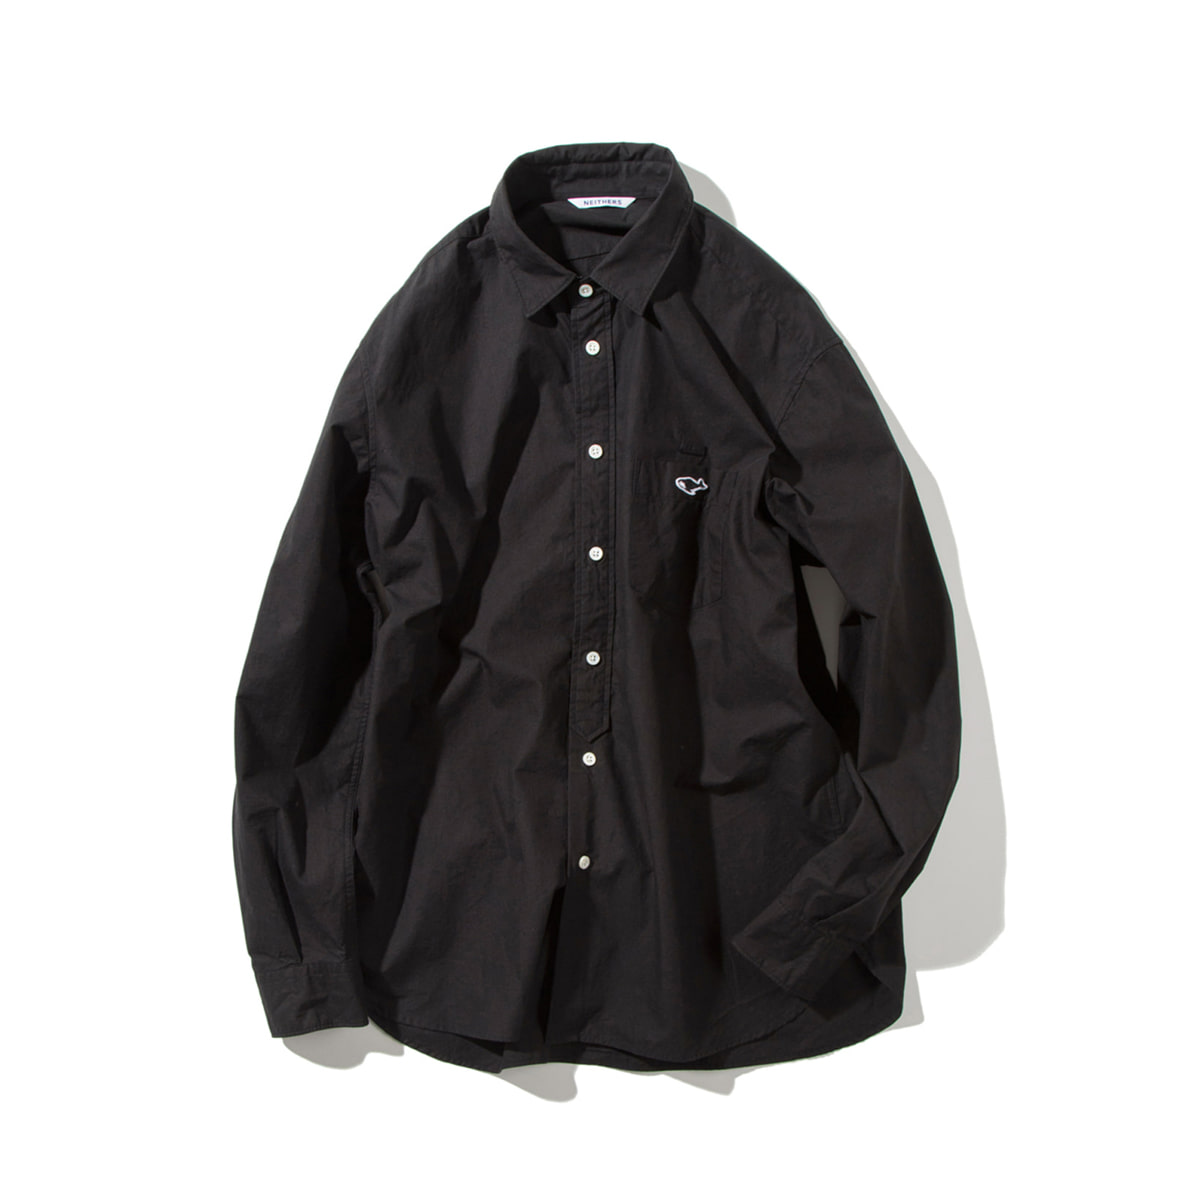 [NEITHERS] 209-3 COMFORT SHIRT 'BLACK'